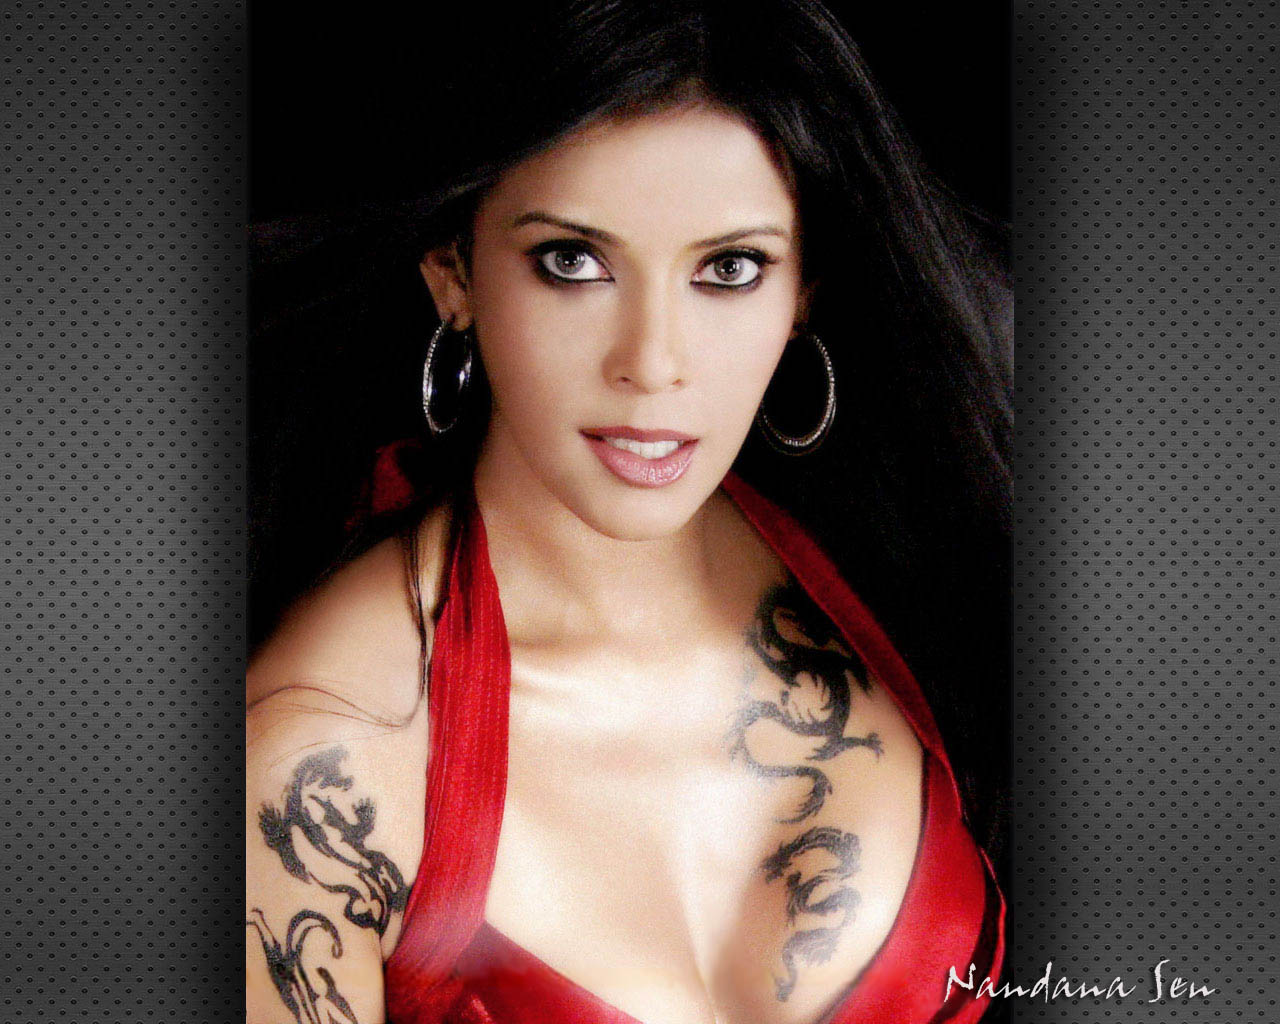 Actress nandana sen hot life. There's